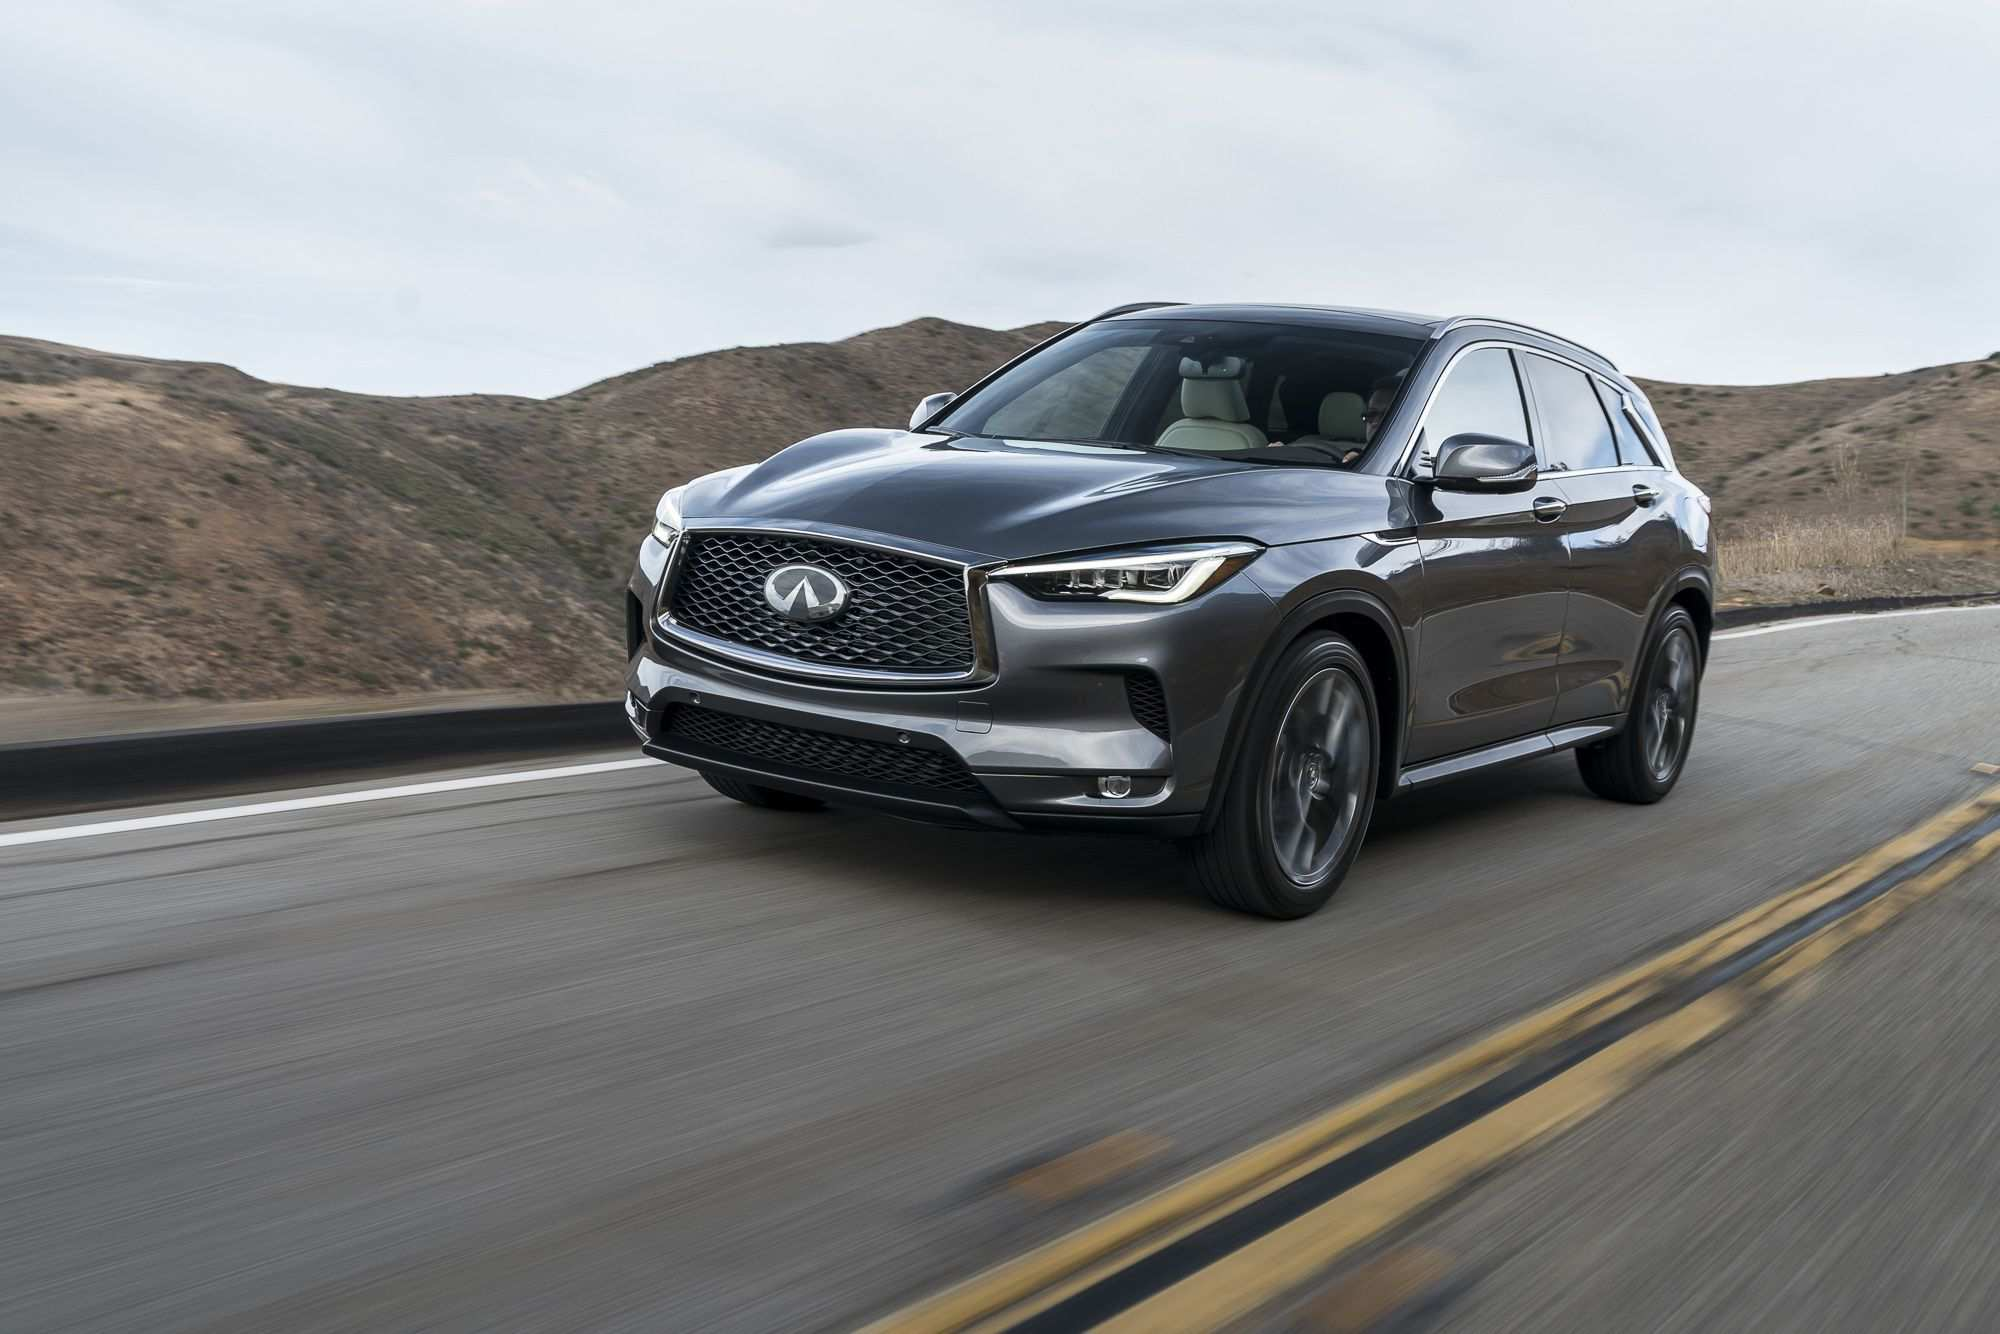 87 The 2019 Infiniti Qx50 Weight Wallpaper